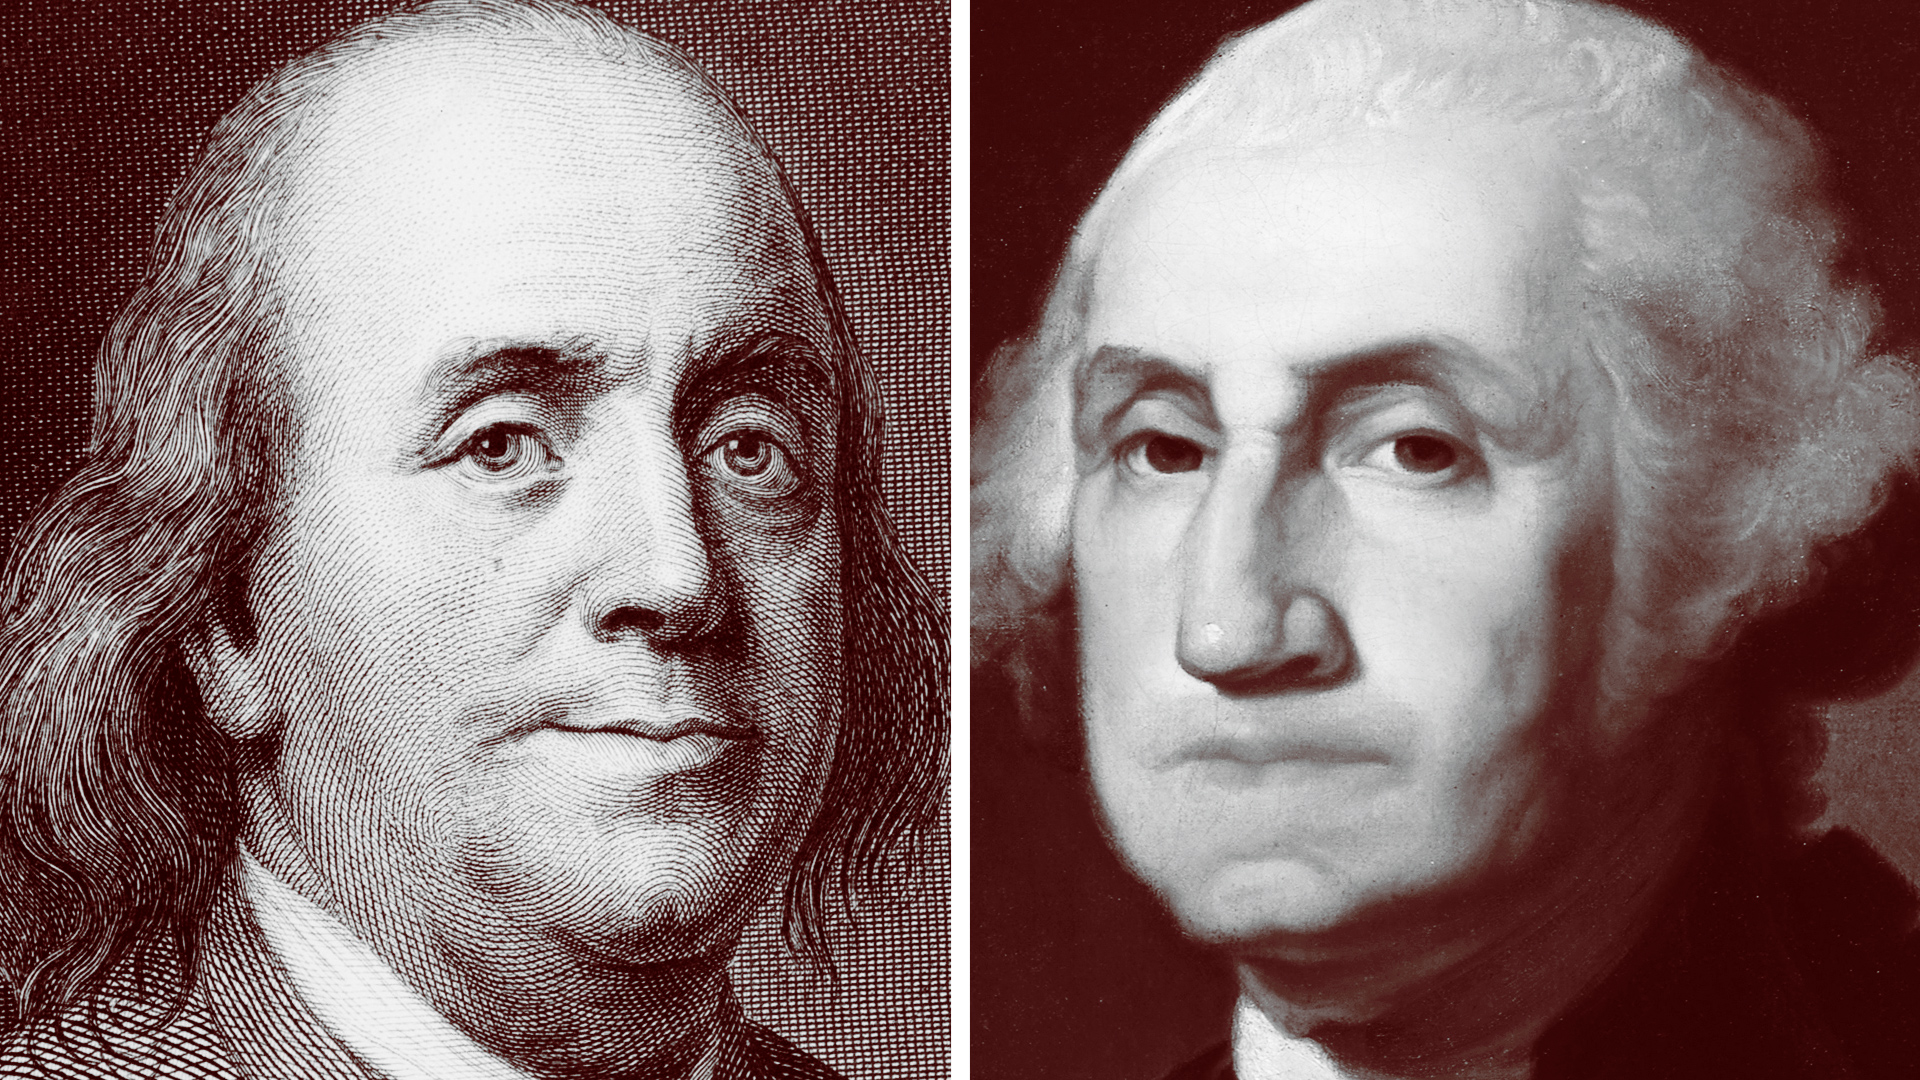 george washington essay biography 1732: george washington is born in westmoreland county, virginia to augustine washington and his second wife mary ball 1738: washington family moves to.